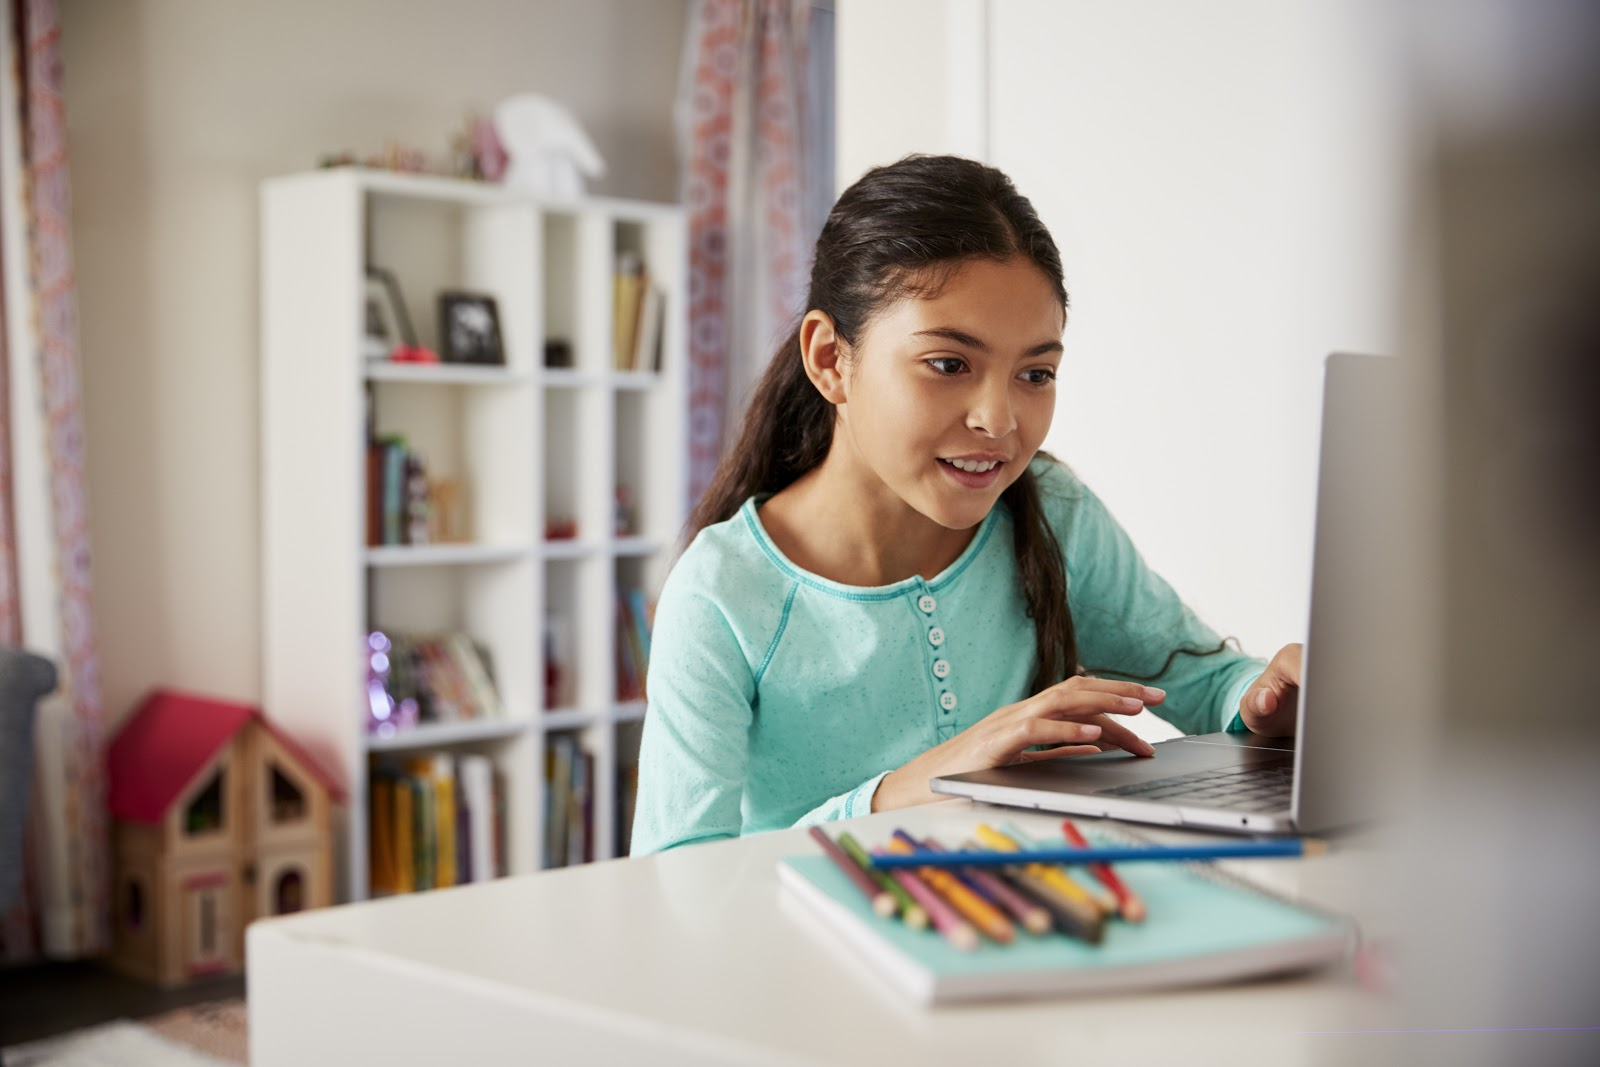 Girl smiling at her laptop computer